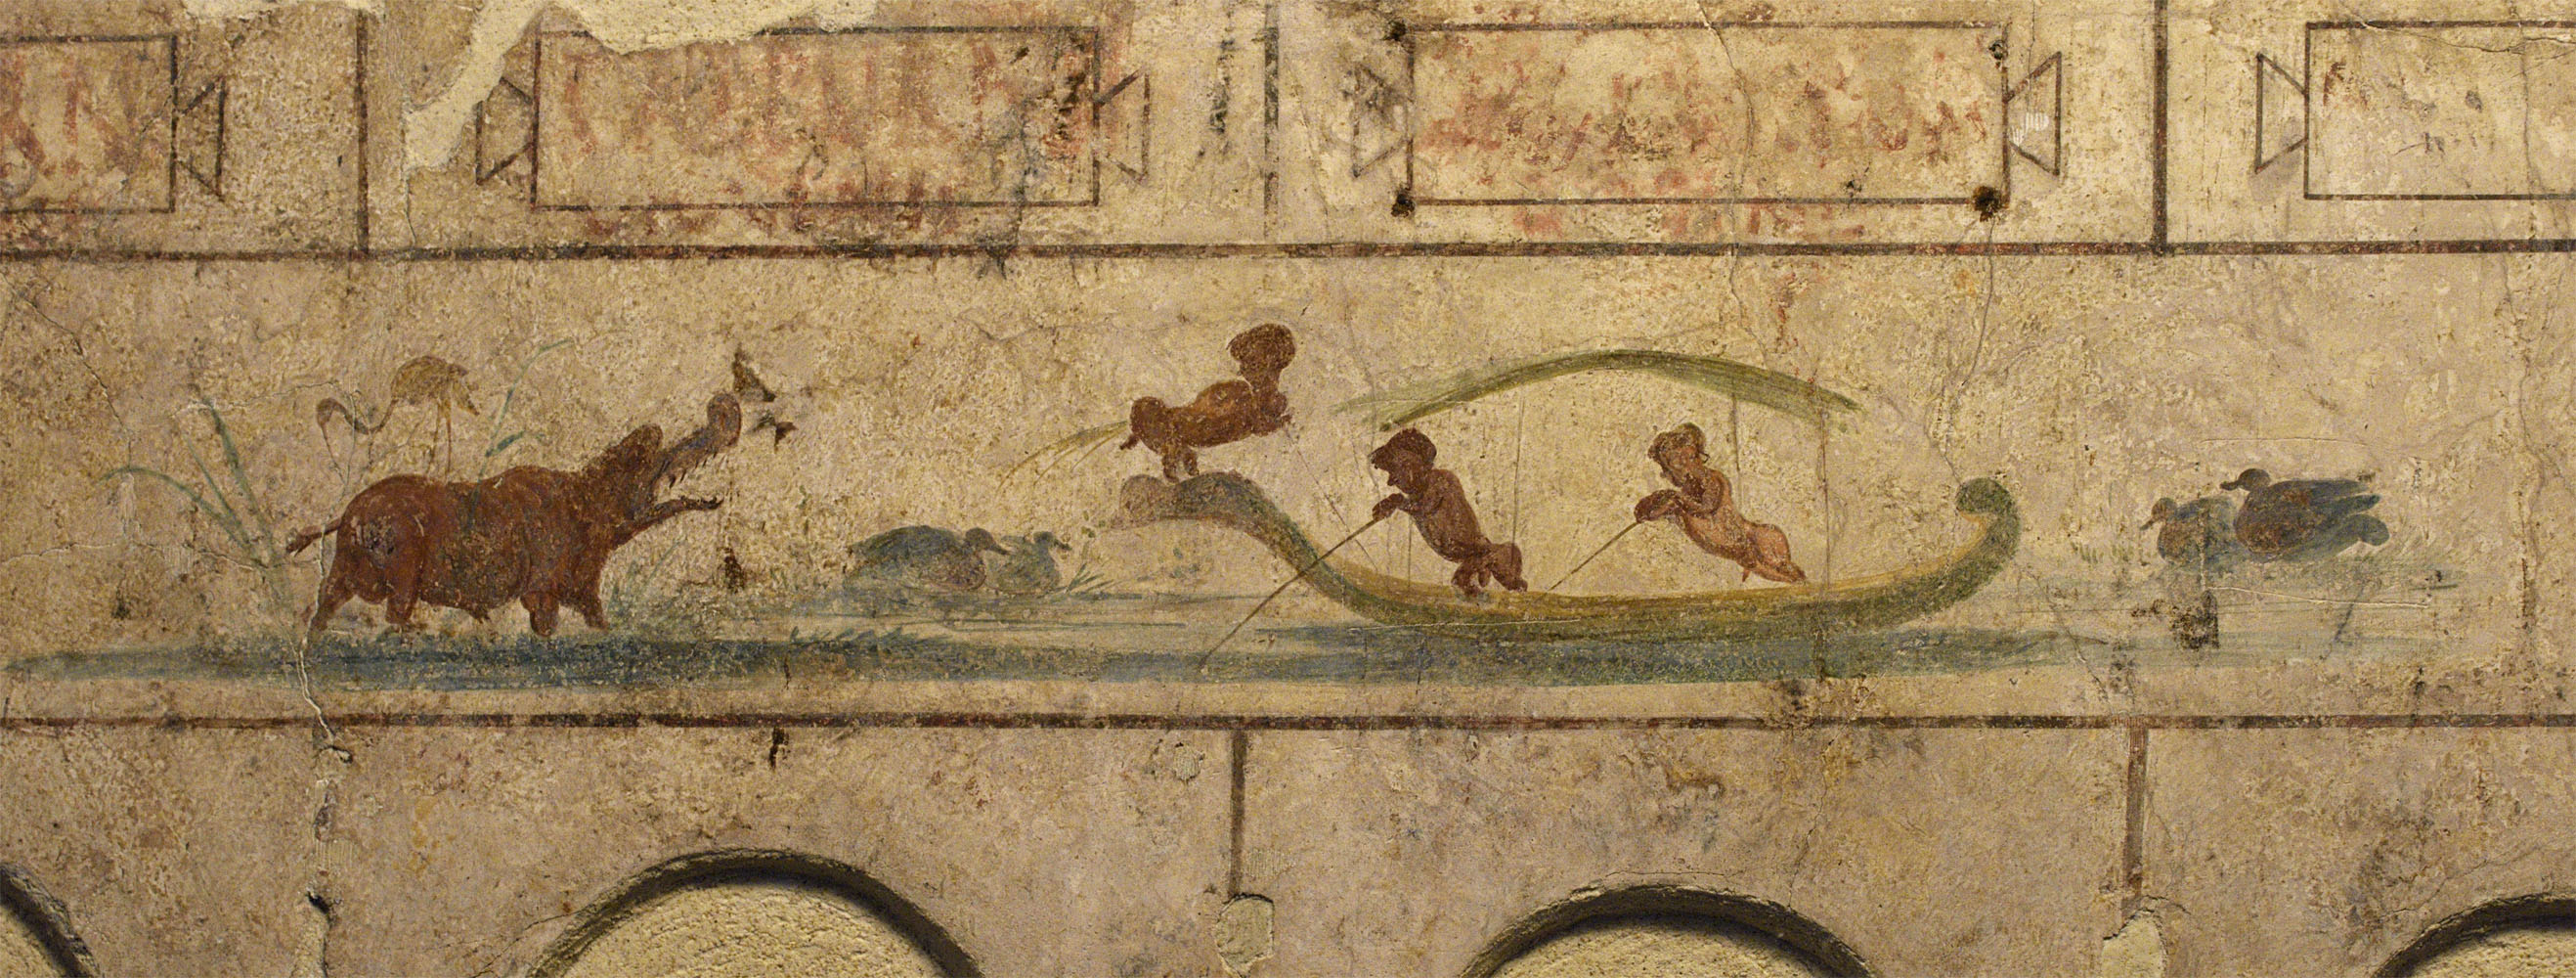 Painted frieze (close-up). The Grand columbarium of the Villa Doria Pamphilj in Rome. End of th 1st cent. BCE — end of the 1st cent. CE. Rome, Roman National Museum, Palazzo Massimo alle Terme